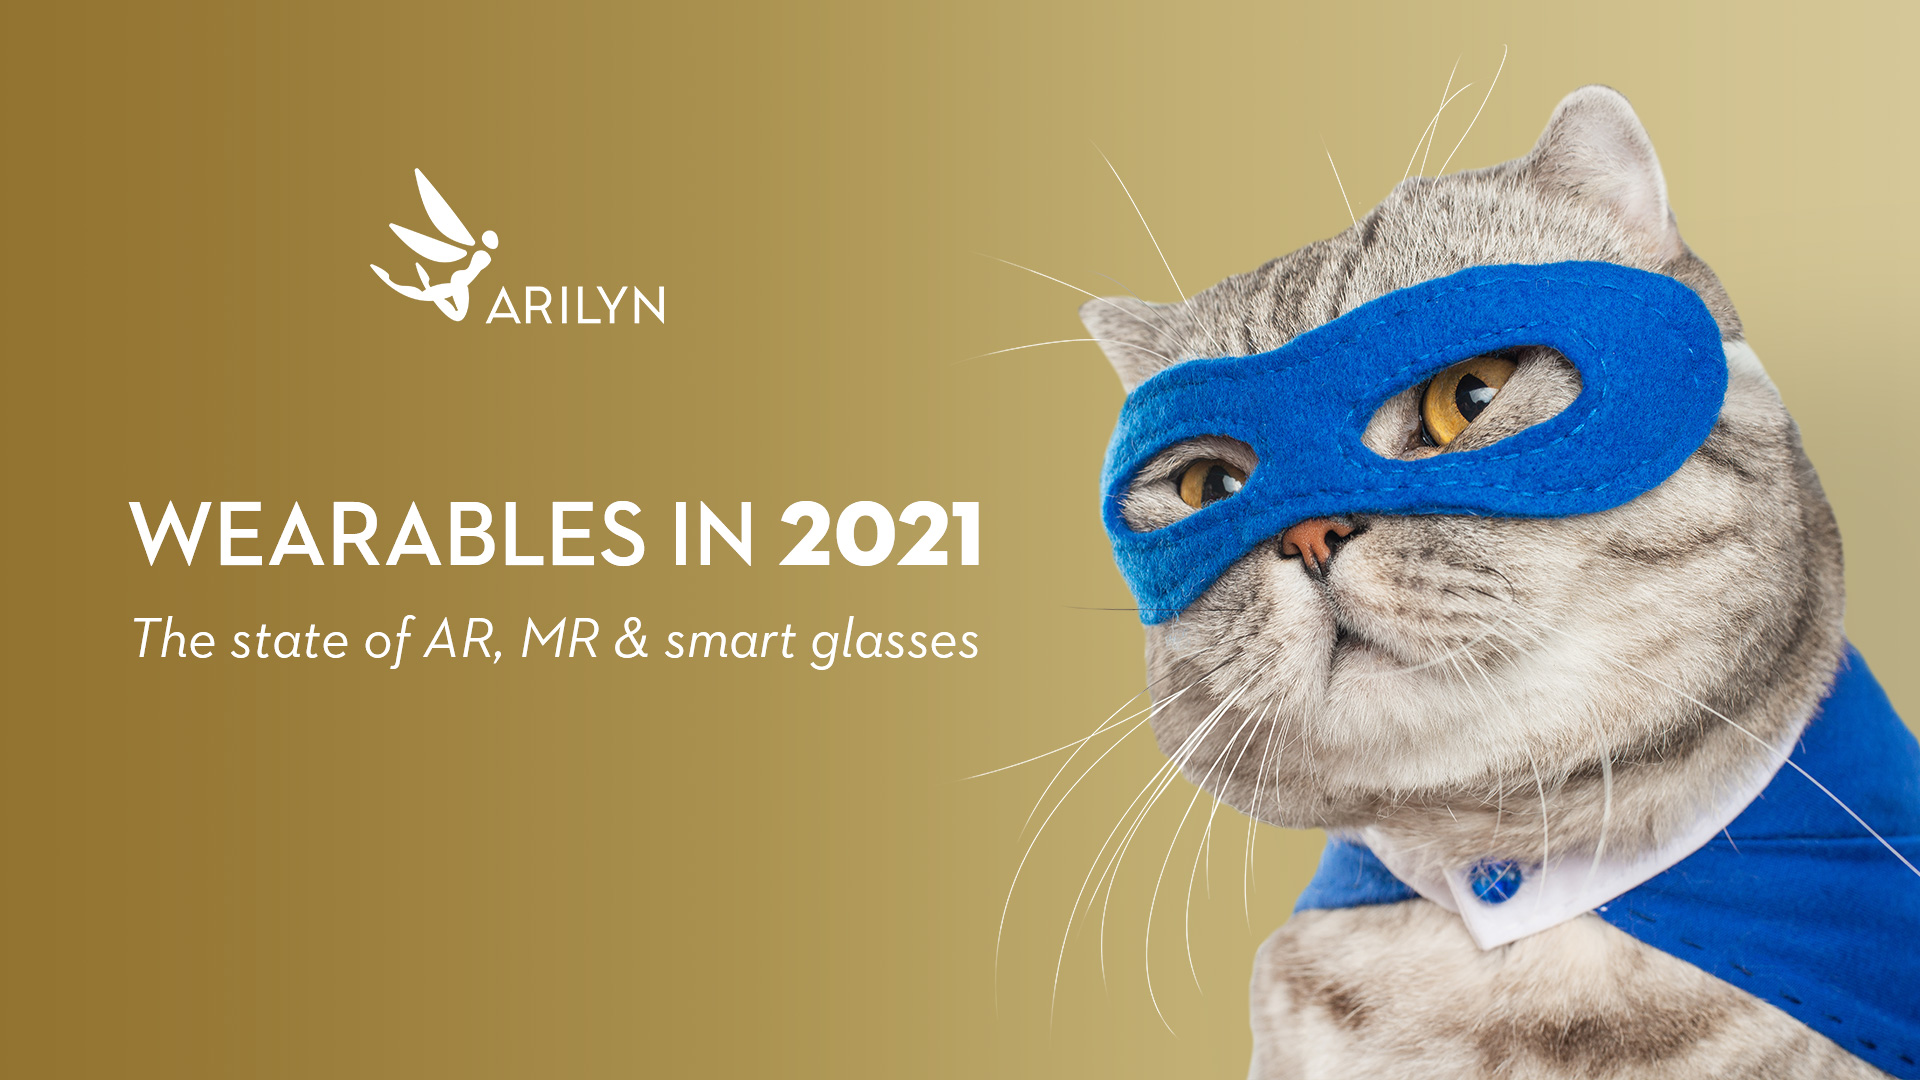 State of AR glasses, smart glasses & wearables in 2021, part 1